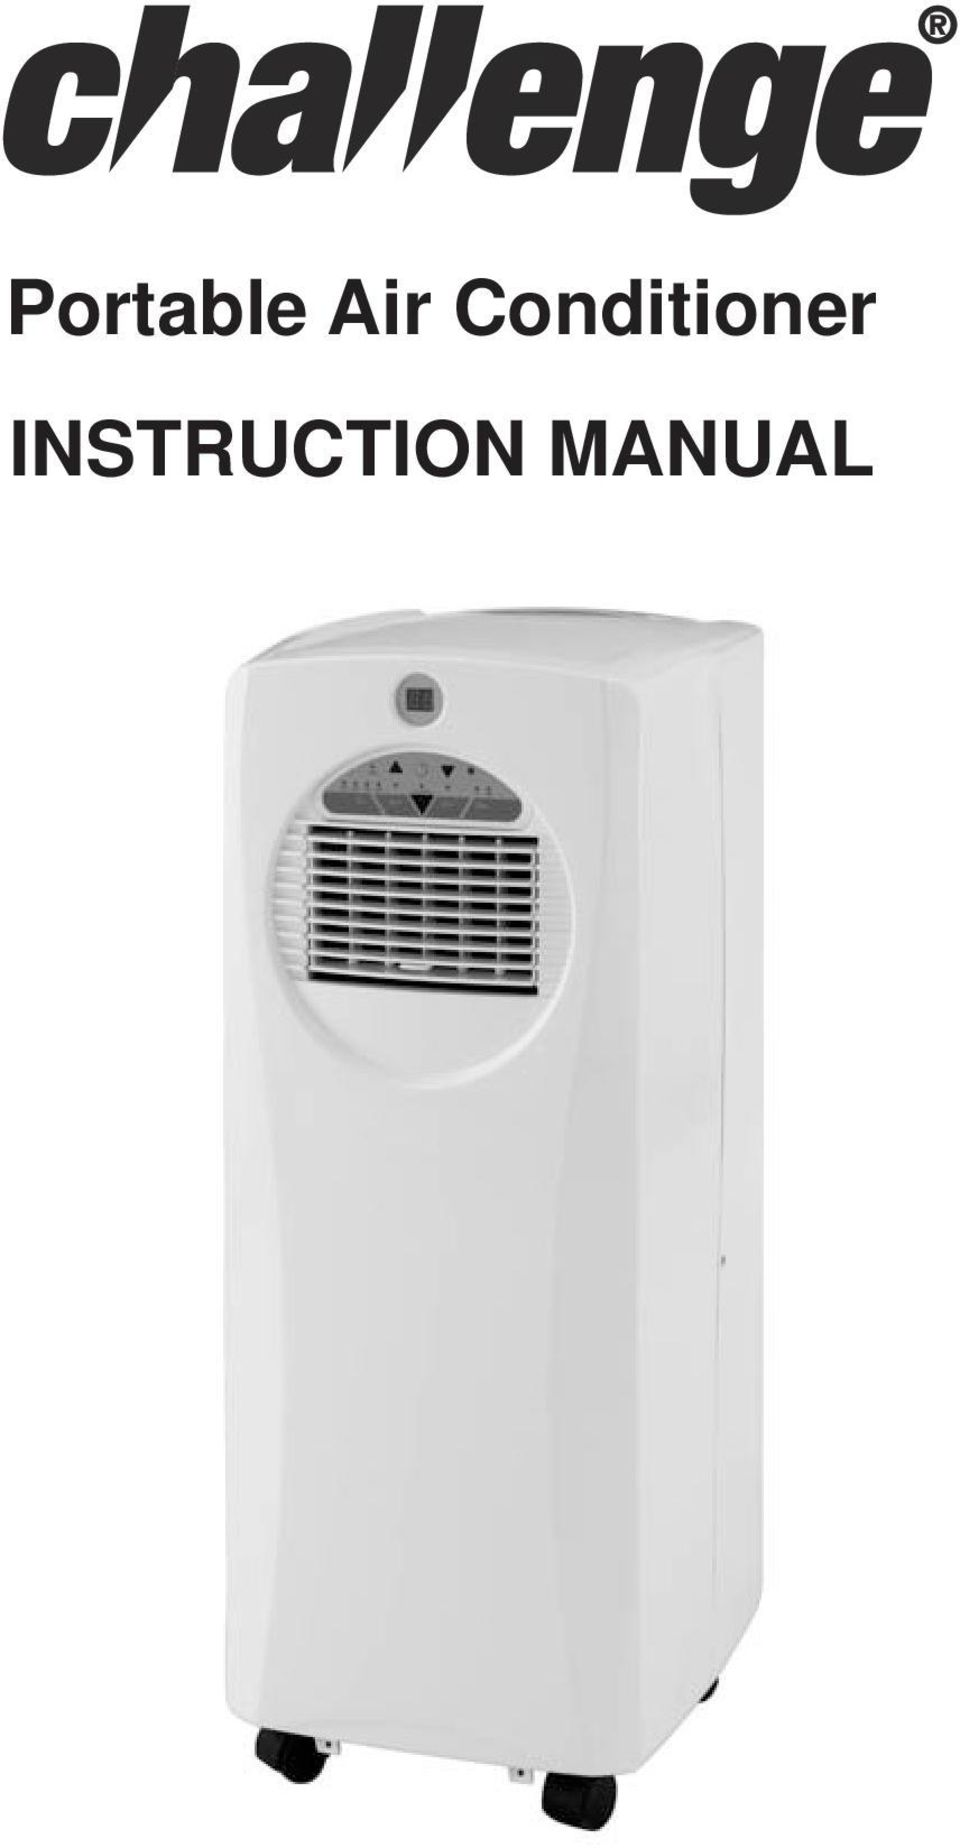 portable air conditioner instruction manual pdf. Black Bedroom Furniture Sets. Home Design Ideas